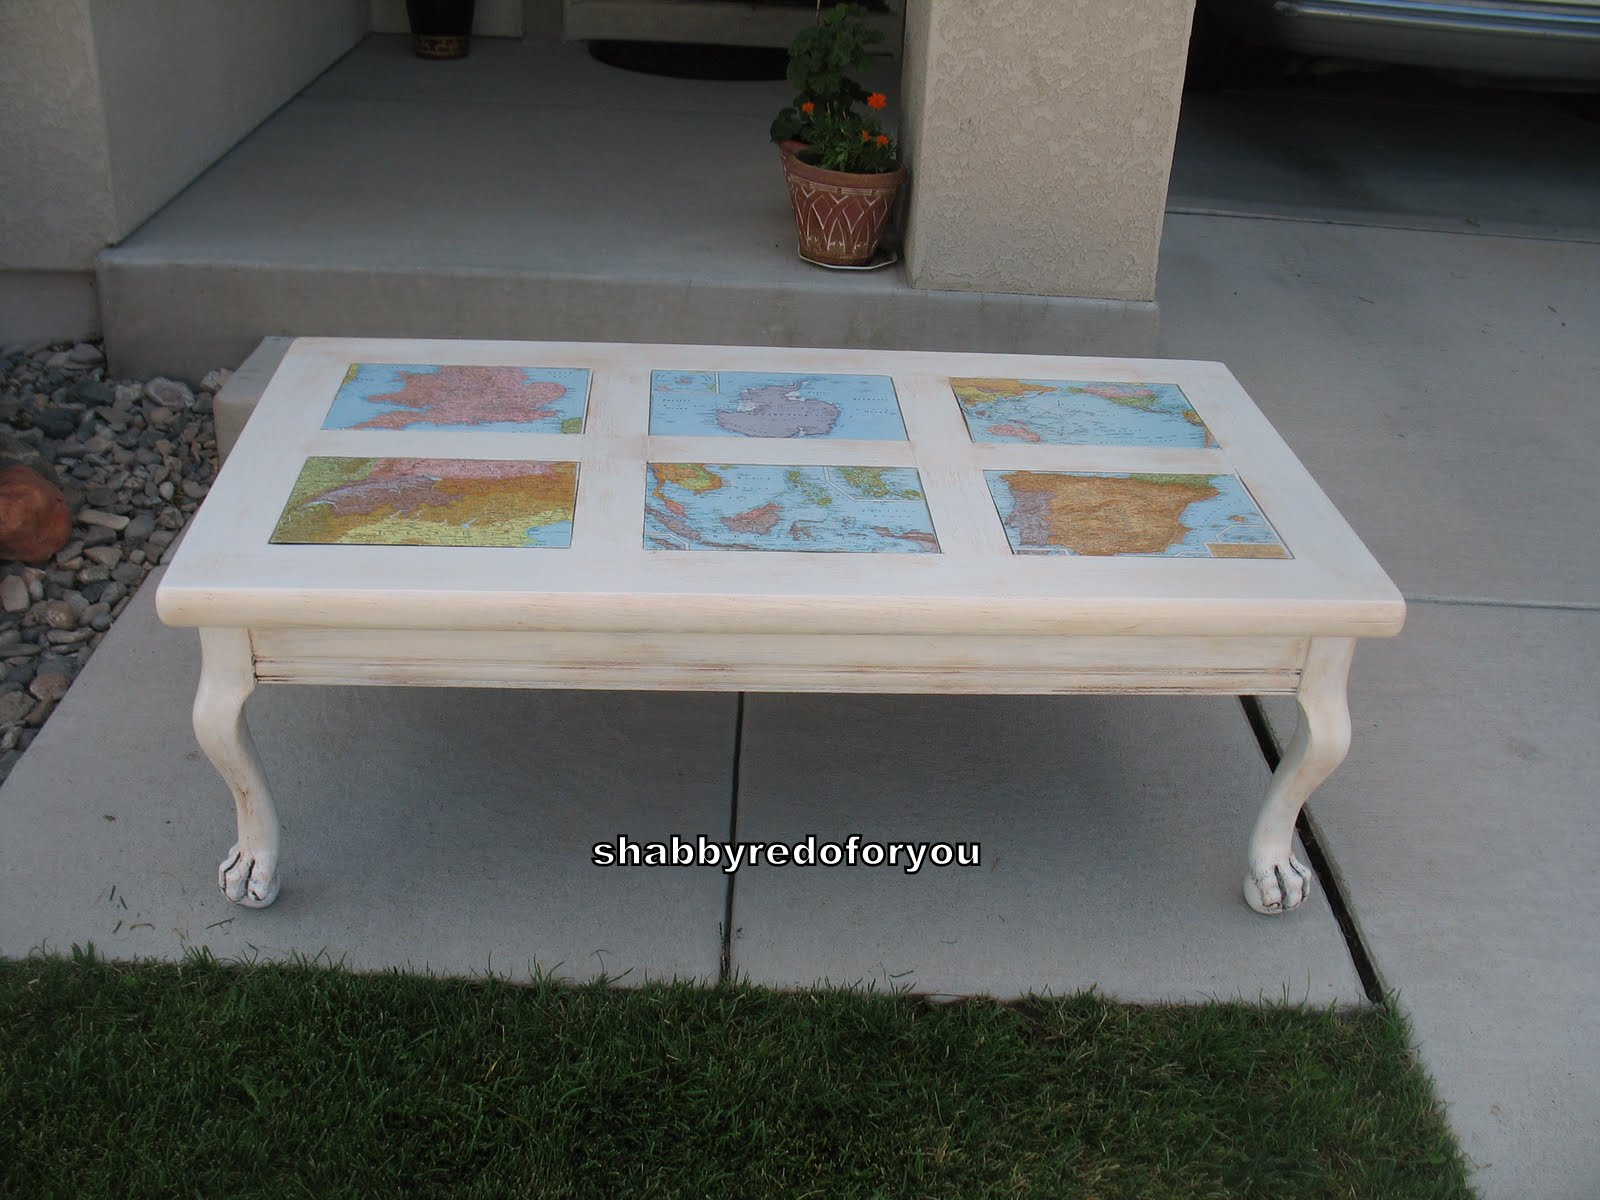 Shabby Redo For You Shabby Coffee Table with Decoupage World Maps